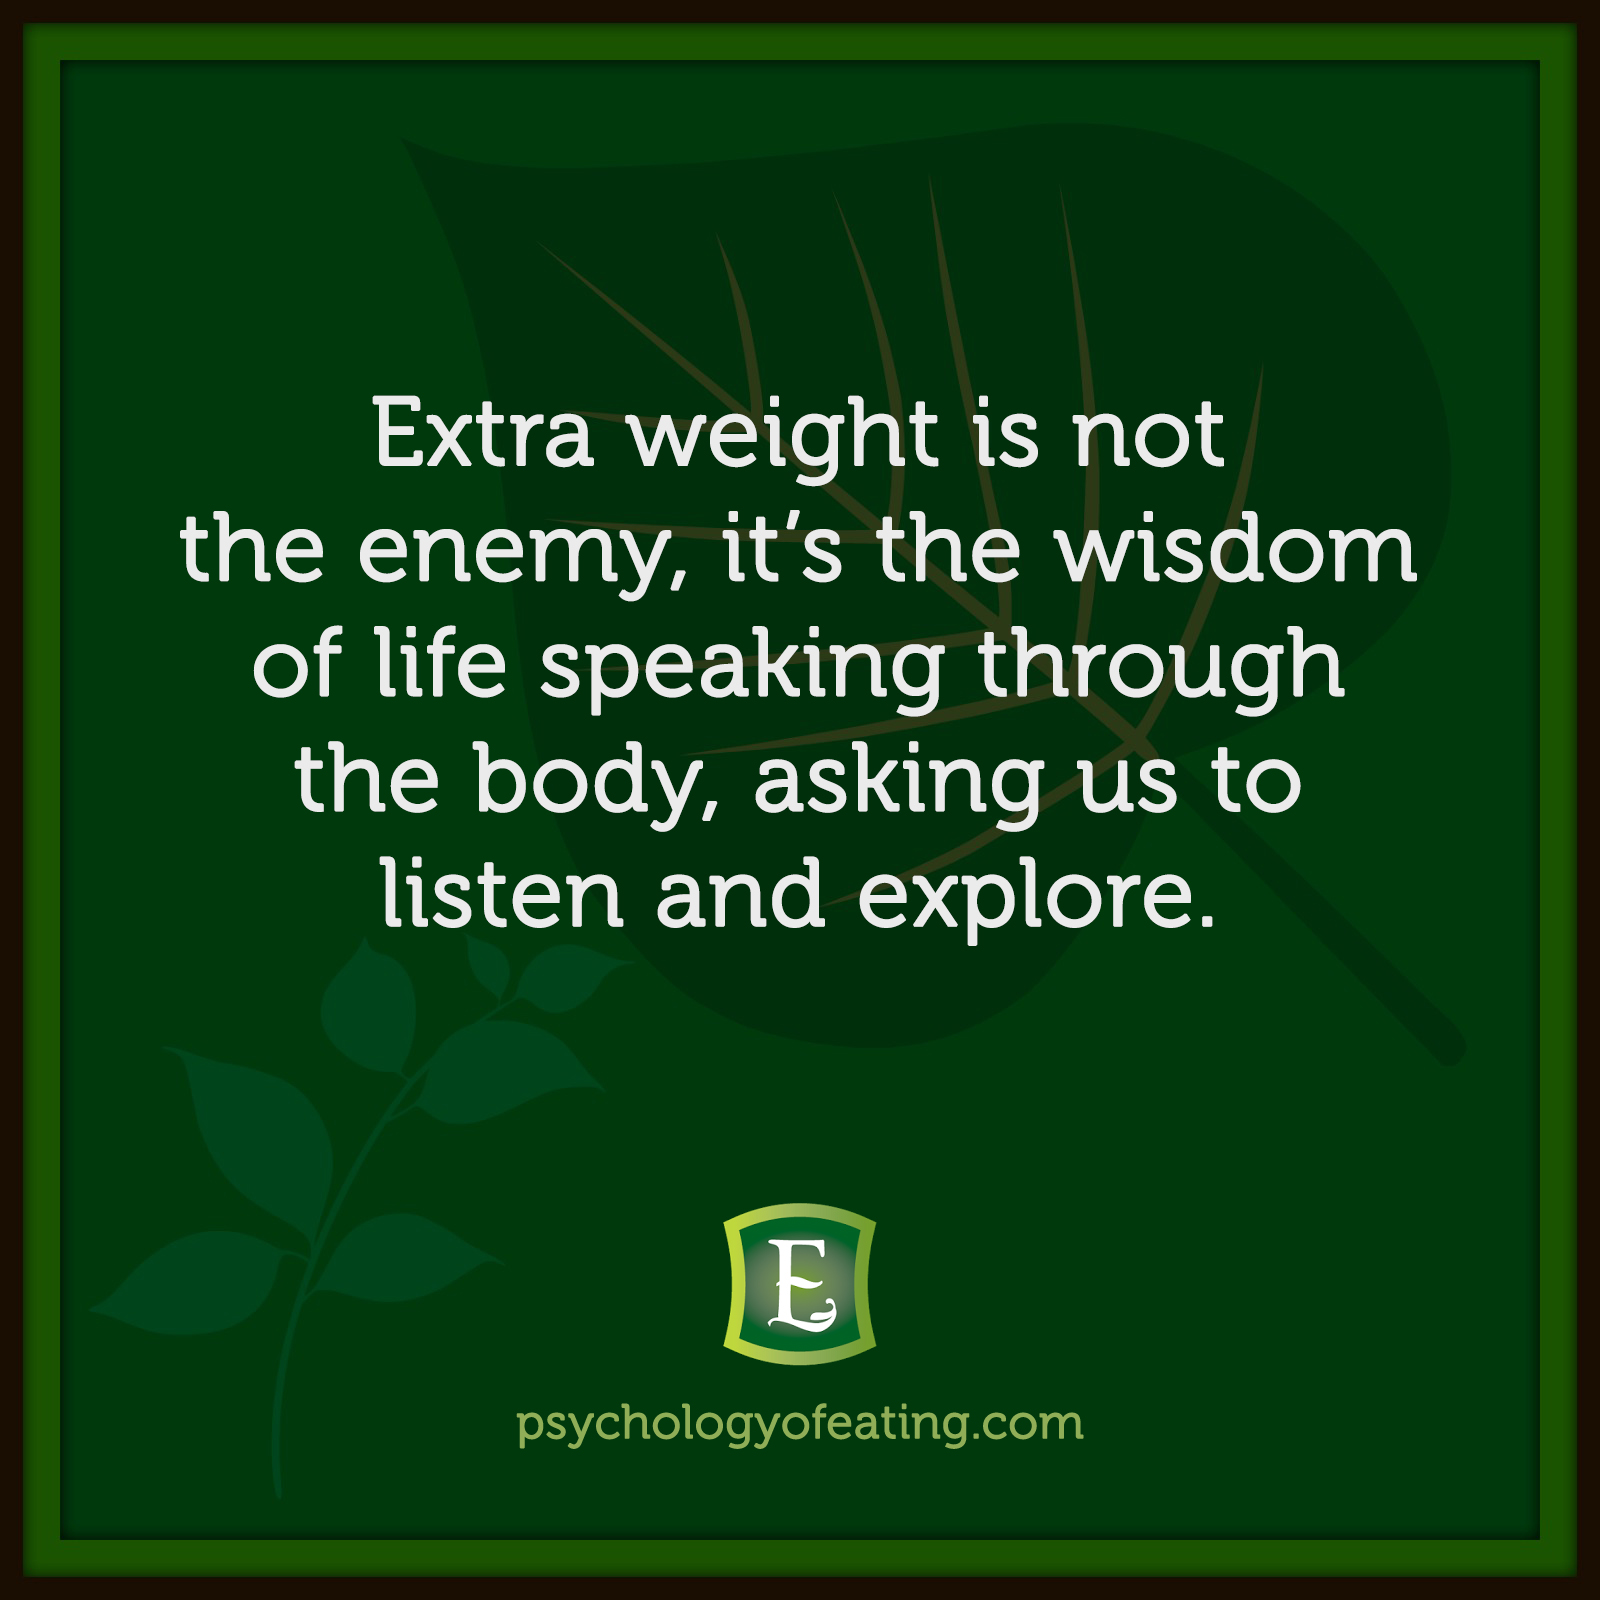 Extra weight is not the enemy, it's the wisdom of life speaking through the body, asking us to listen and explore. #health #nutrition #eatingpsychology #IPE